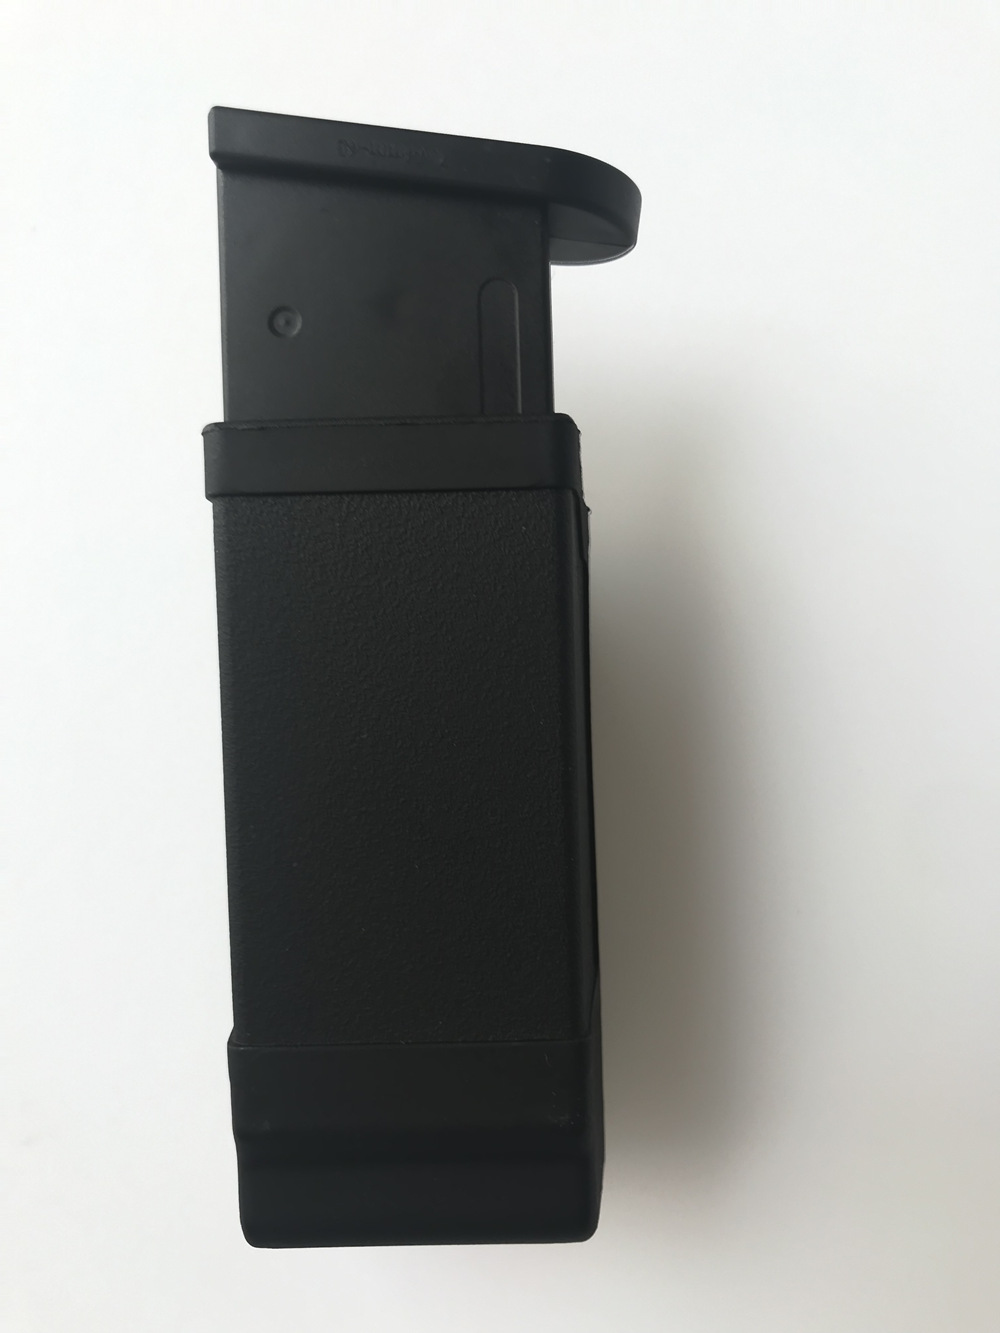 Tactical Mag Holder CQC Stack Magazine Pouch Holster For Glock 9mm Caliber Magazine Or 1911 Caliber